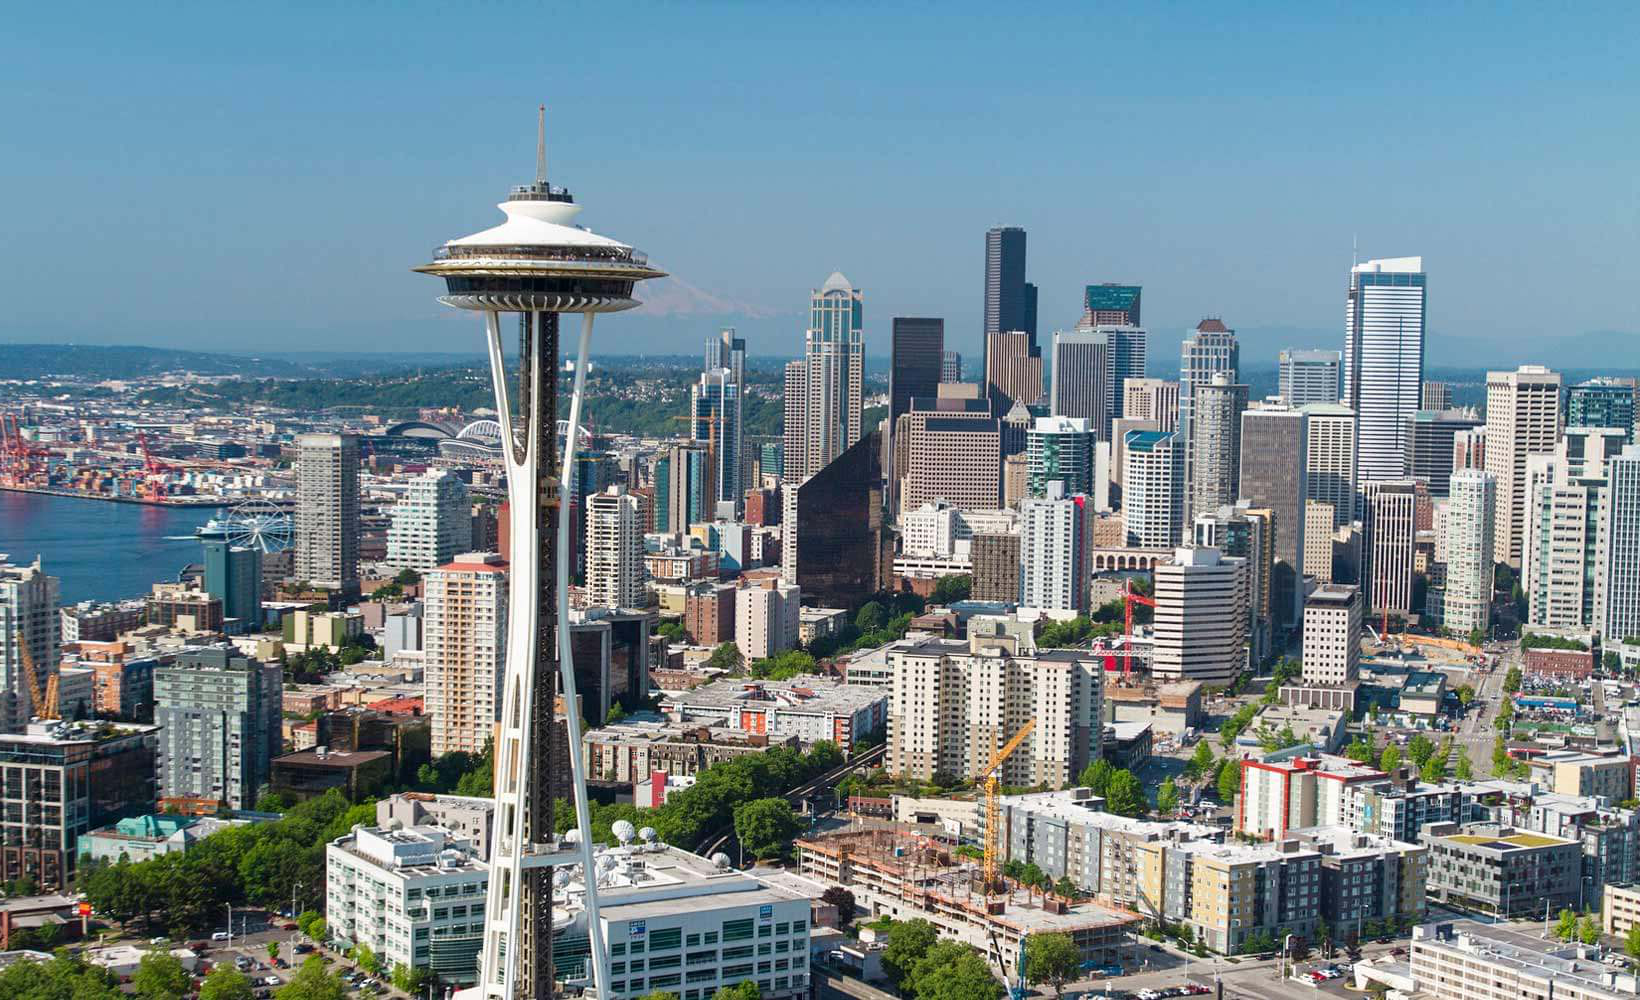 Aerial view of Seattle's Space Needle